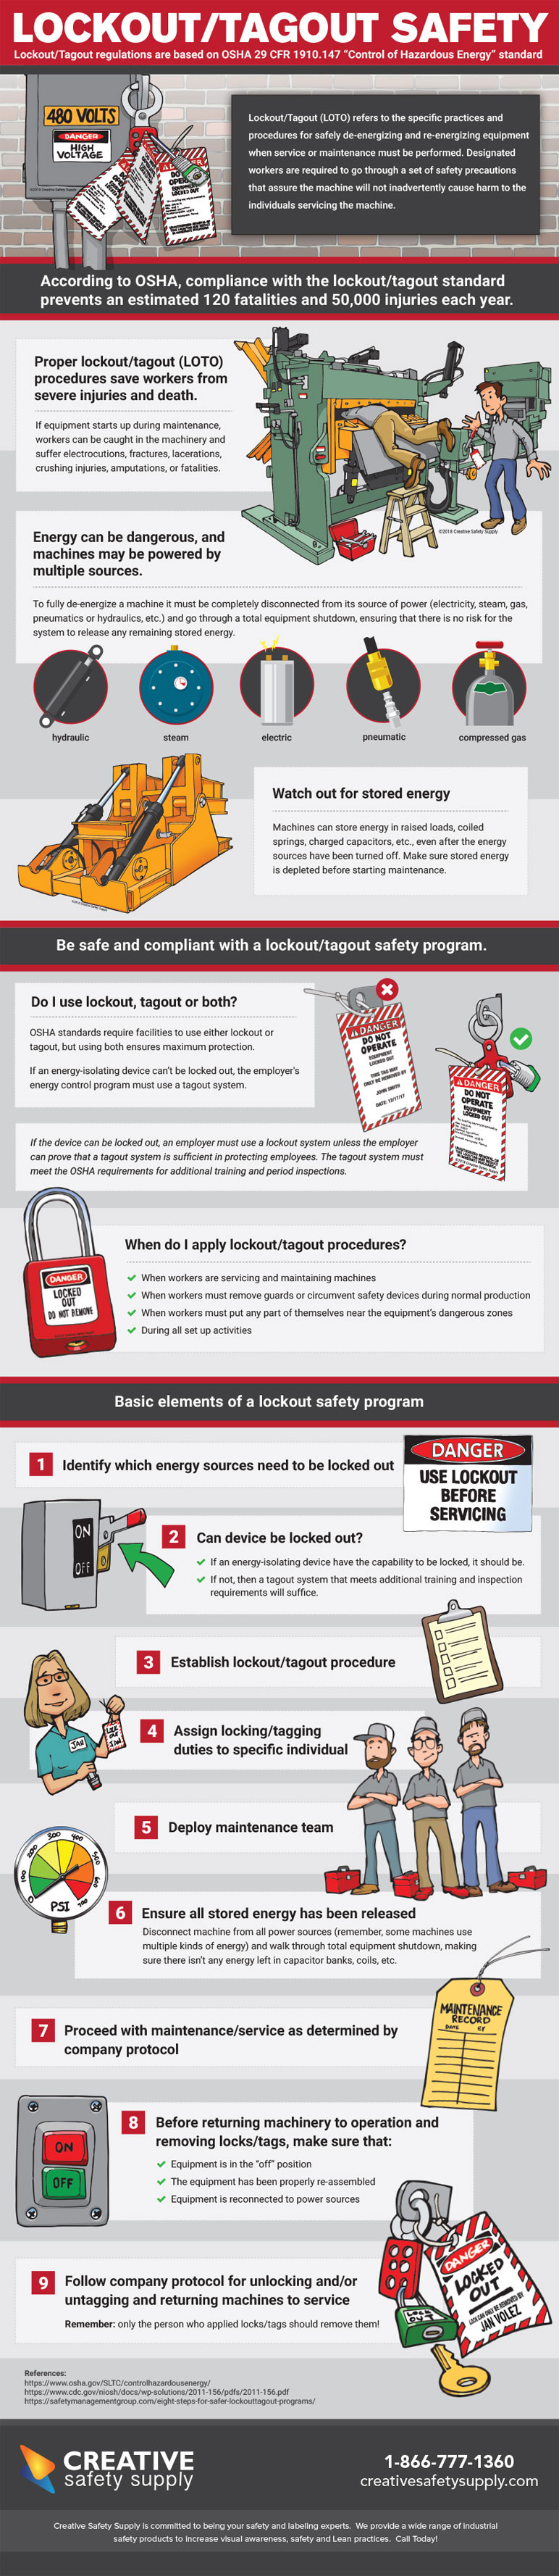 Lockout/Tagout Safety Infographic | Creative Safety Supply